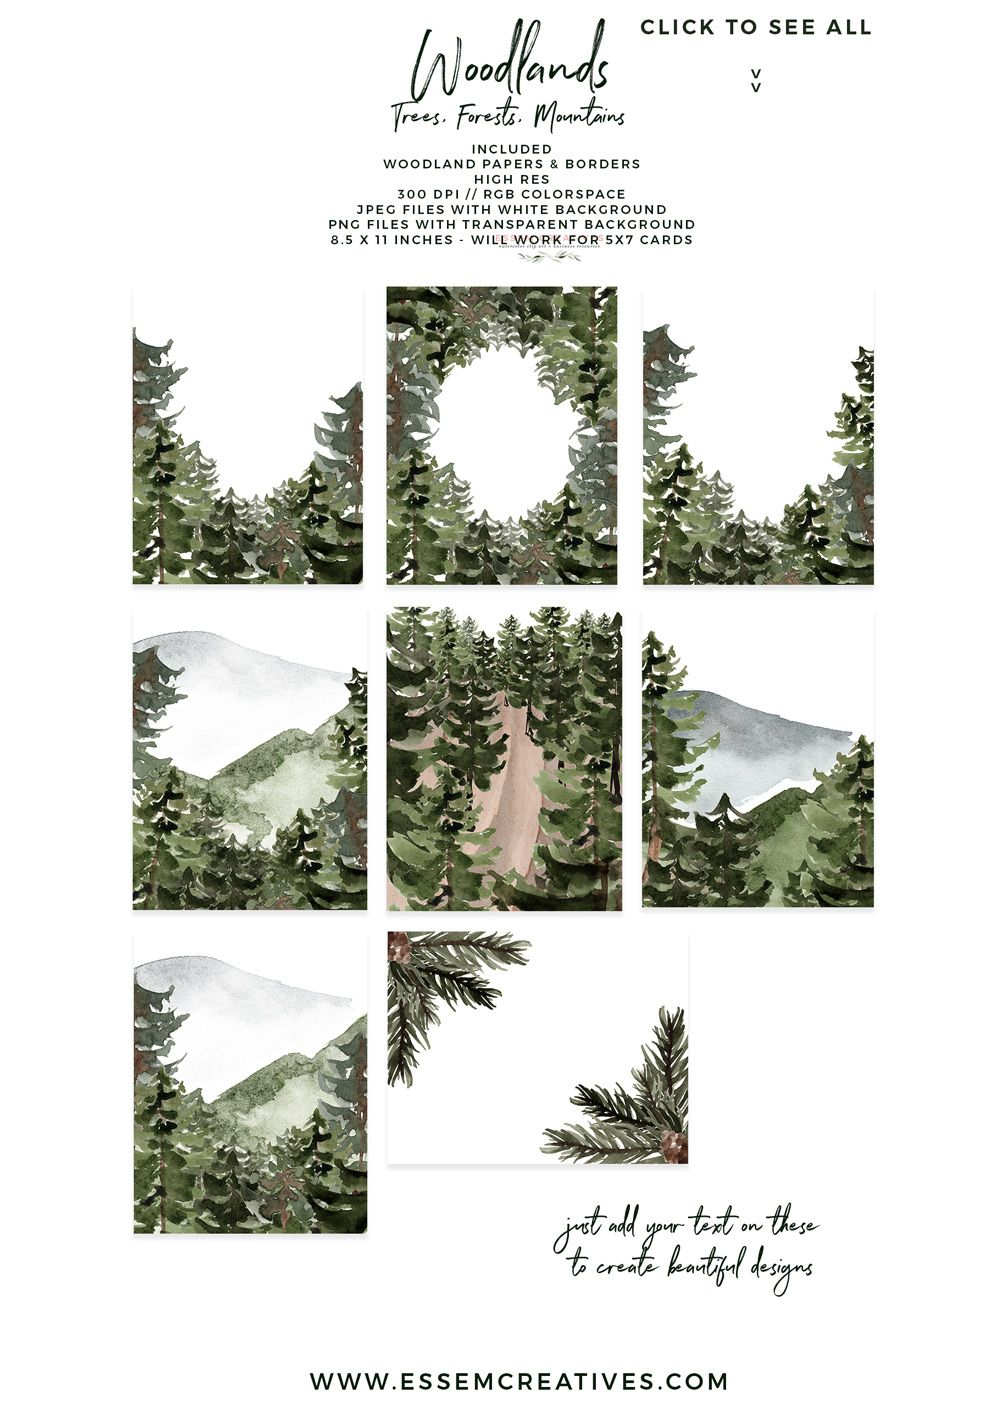 Mountain Forest Wedding Invitations forest mountain pine trees greenery watercolor green forest wedding invitation wedding invites